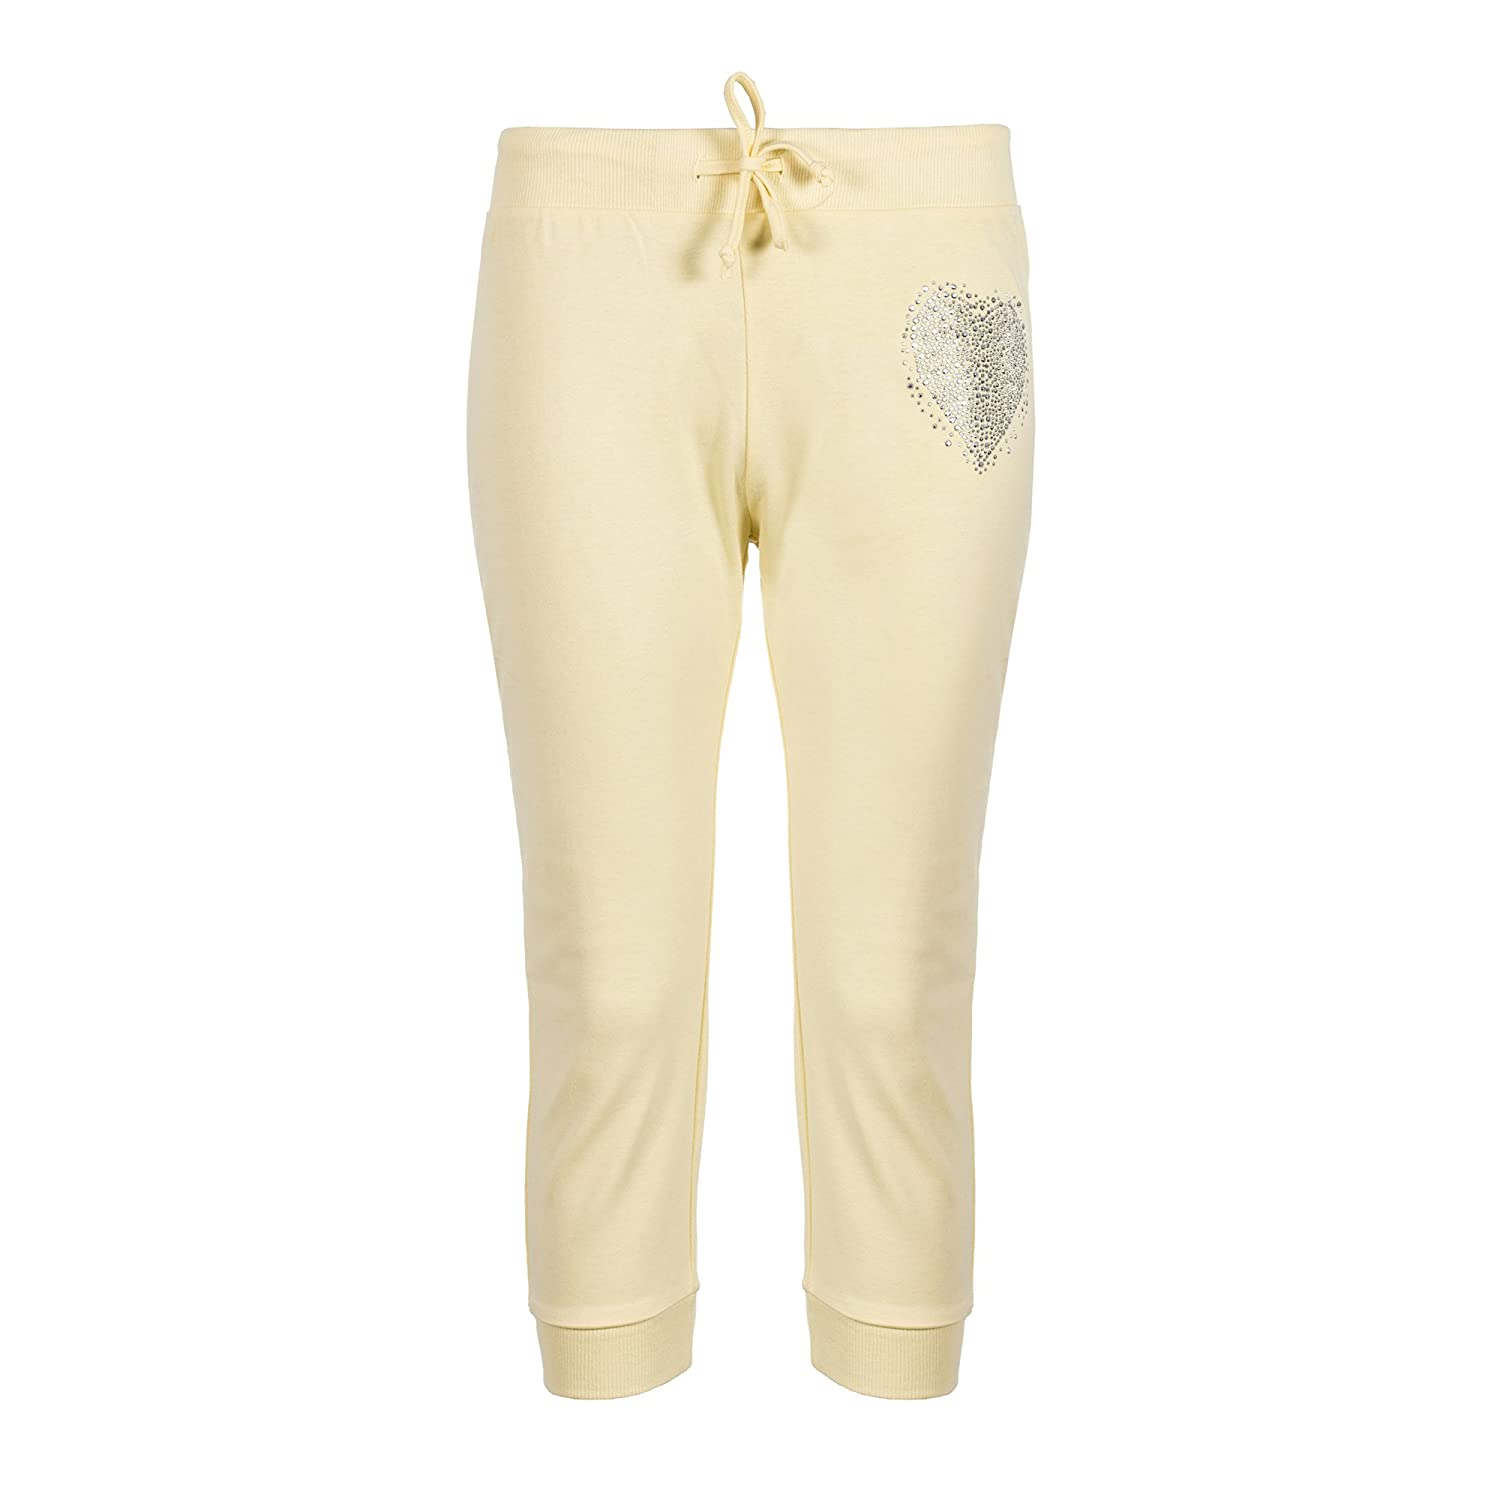 Girls Gym Joggers Casual Brody /& Co